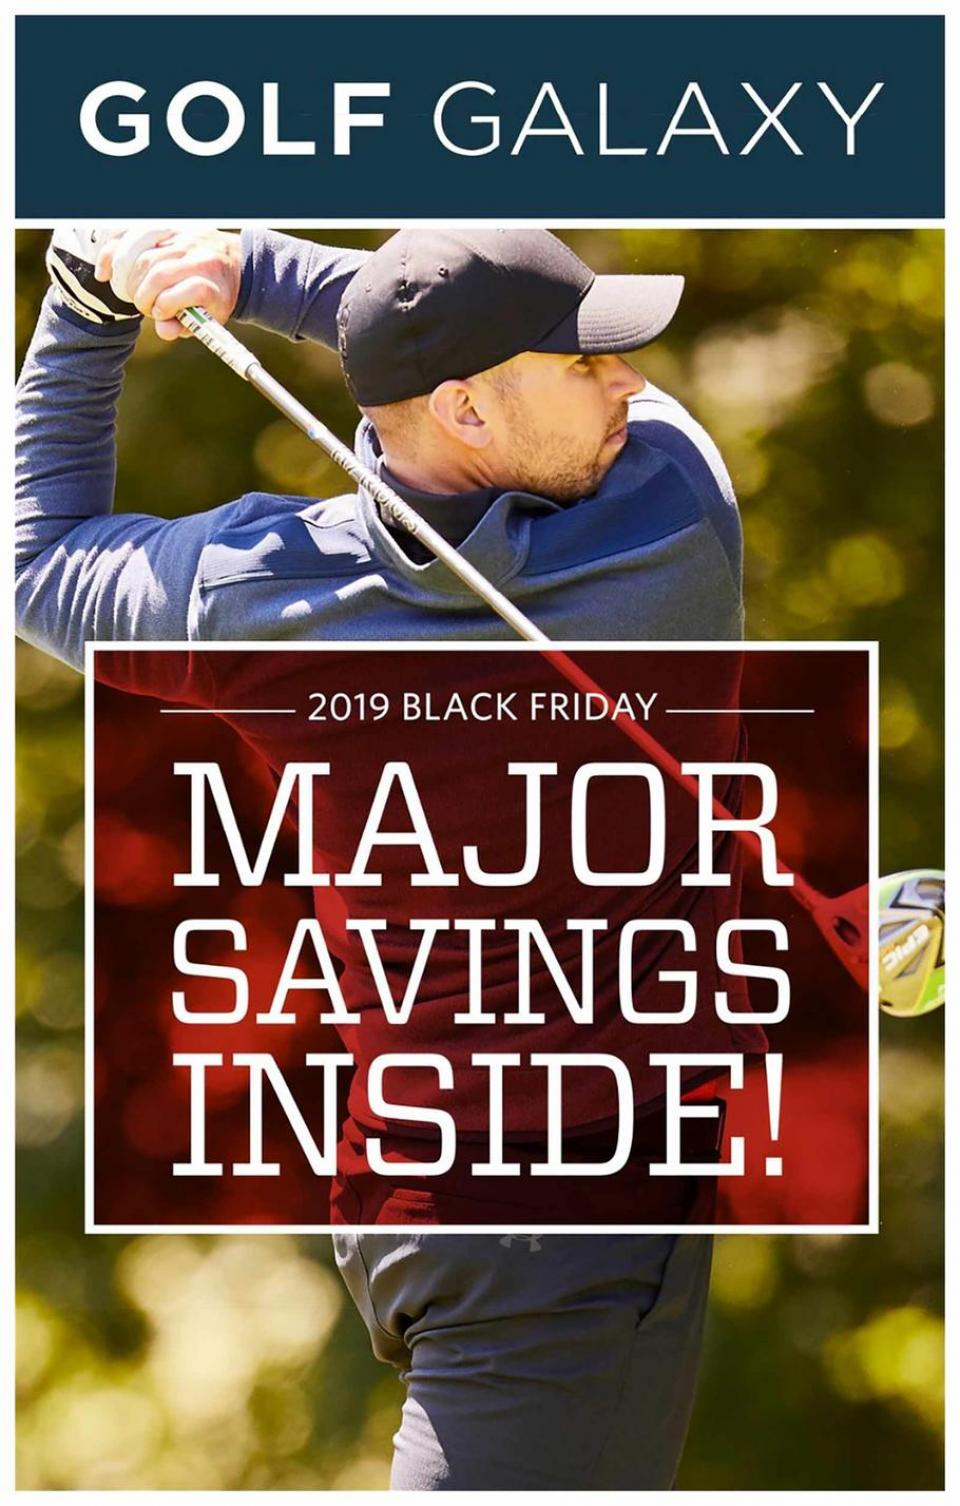 Golf Galaxy black friday ad